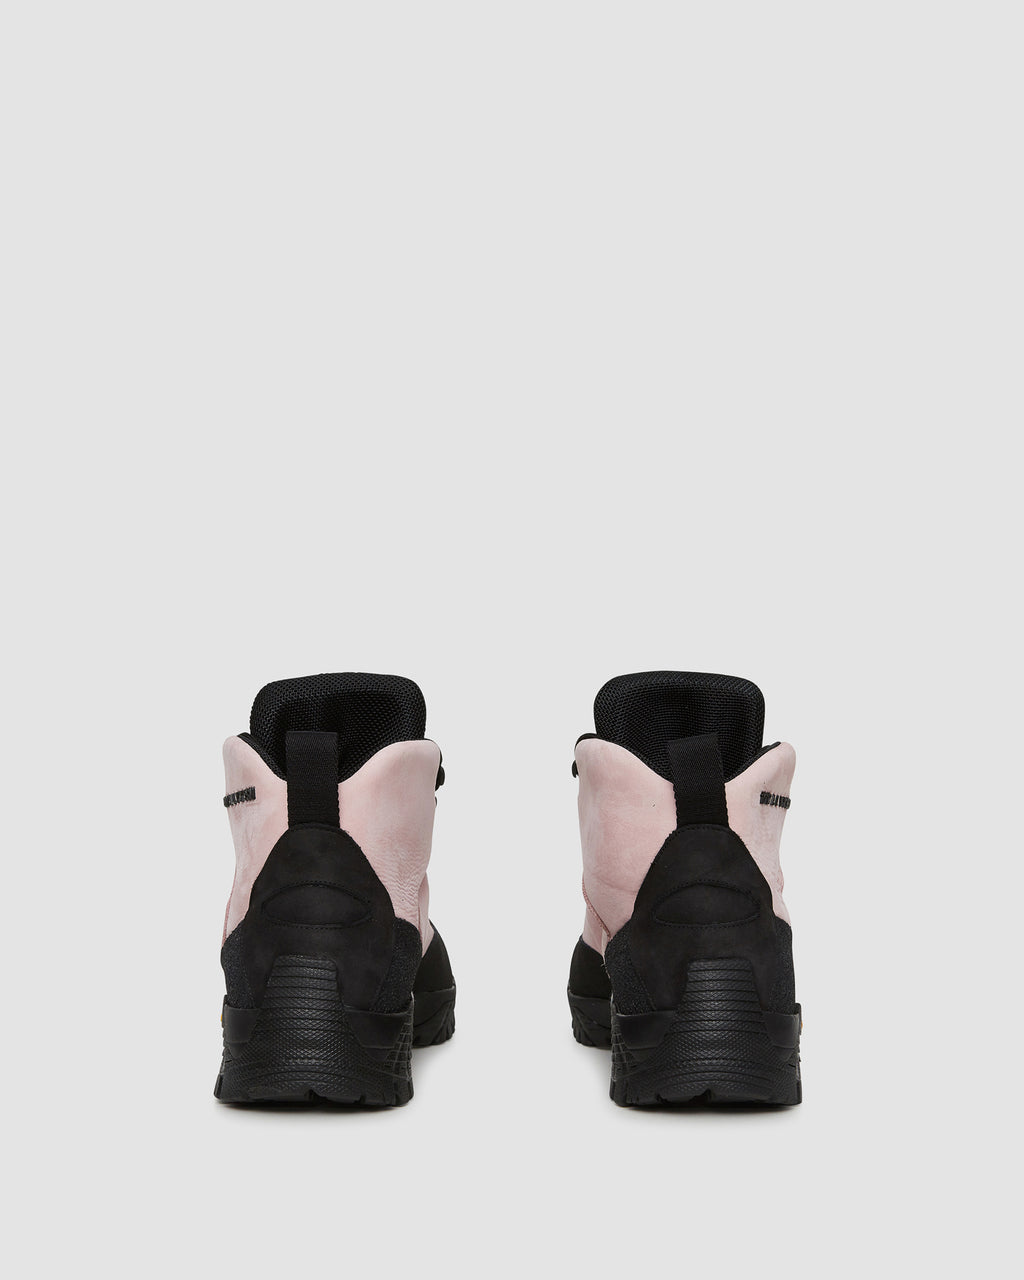 1017 ALYX 9SM | HIKING BOOT | Shoe | BOOTS, Google Shopping, PINK, S20, Shoes, SS20, Woman